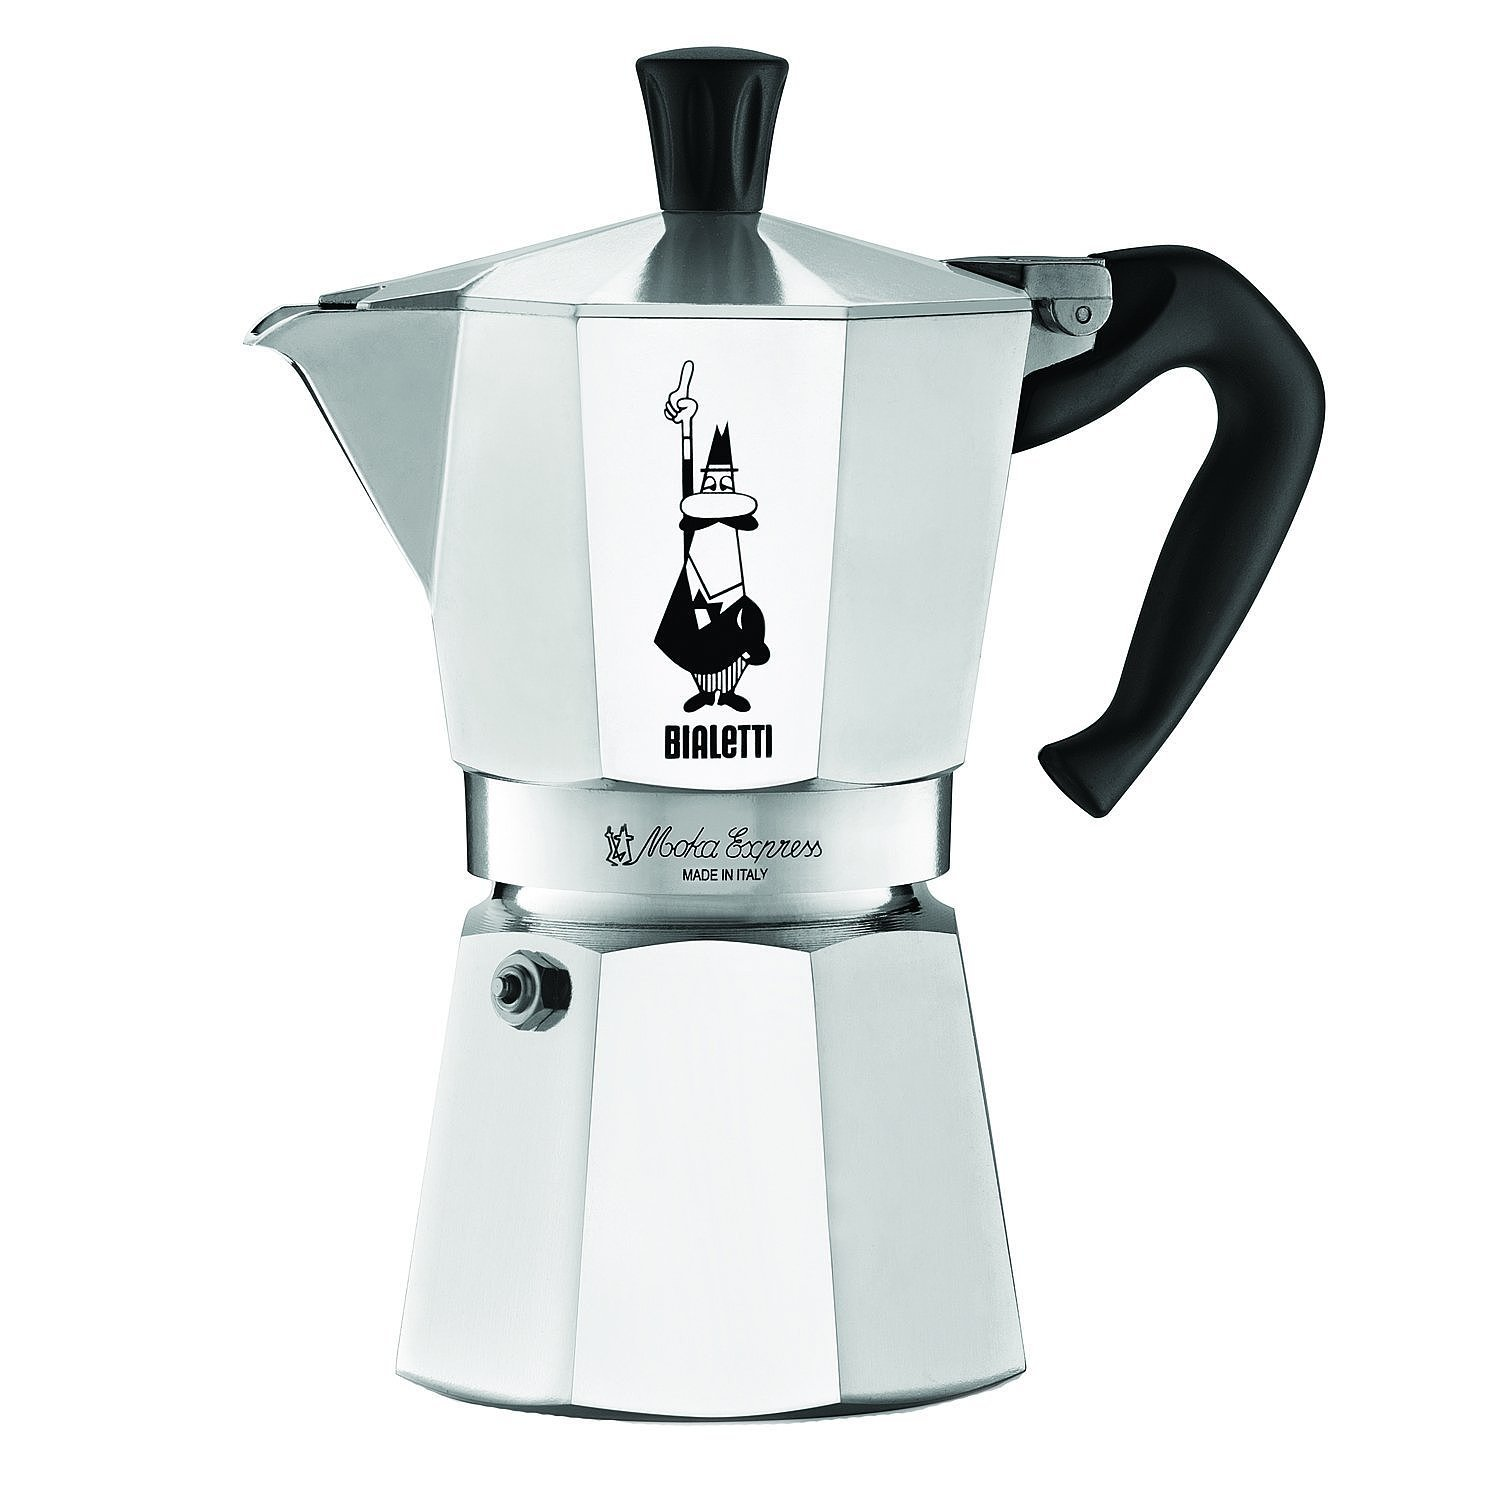 Italian Coffee Maker Best Coffee : Italian Stove-Top Espresso Makers Coffee Break: A Look Into the World of Coffeemakers ...